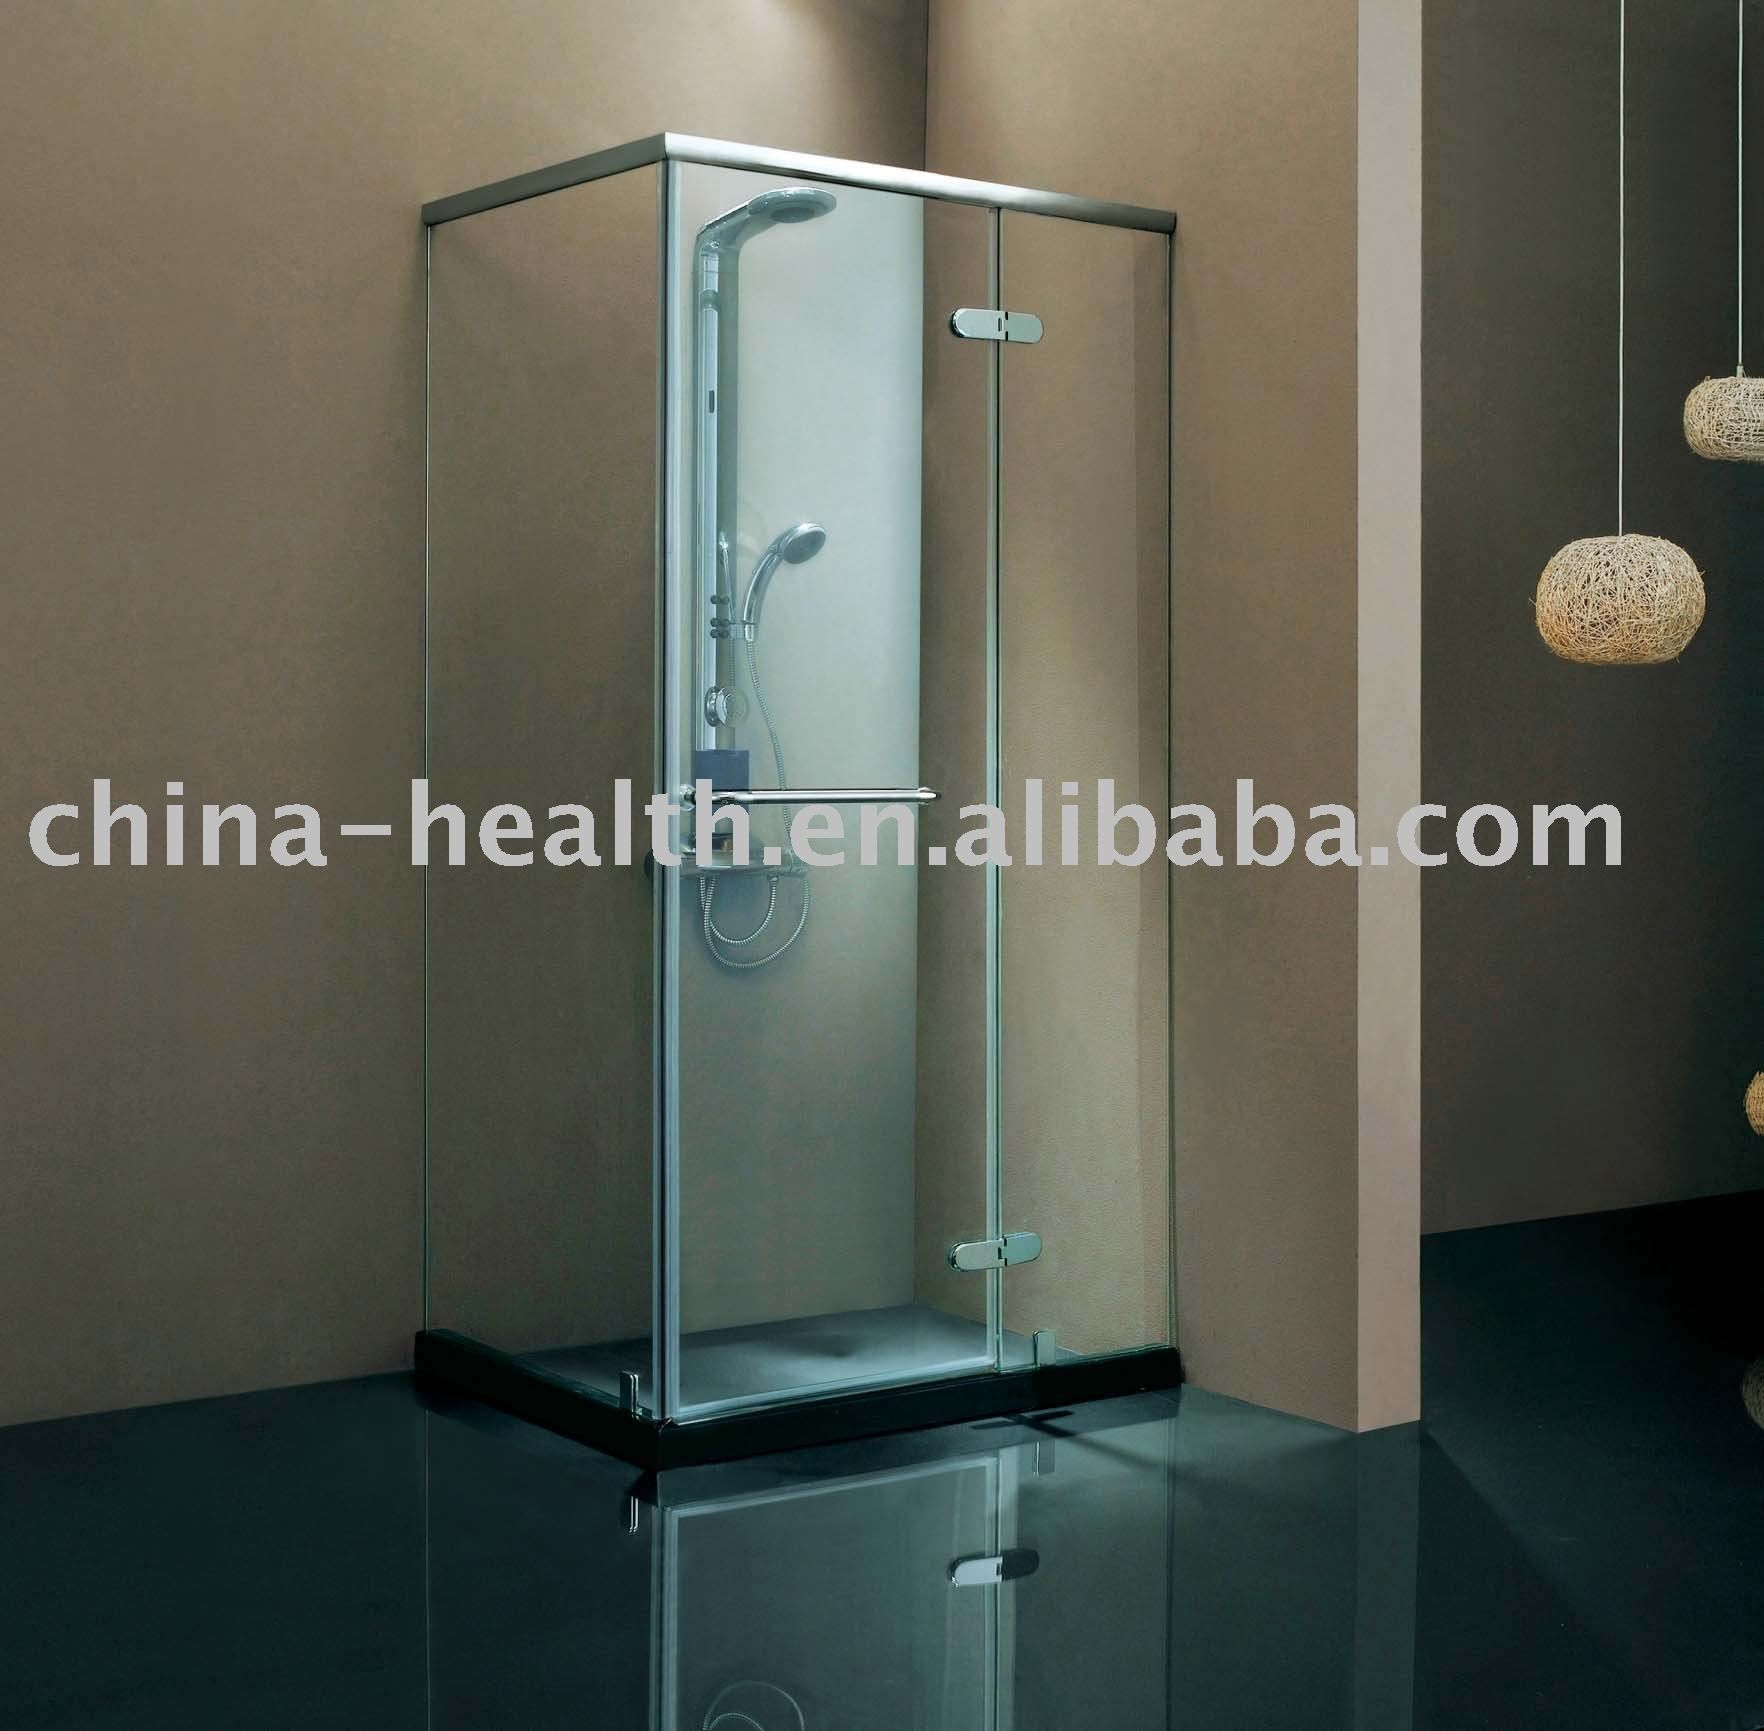 Bathroom Glass Partition Price Philippines